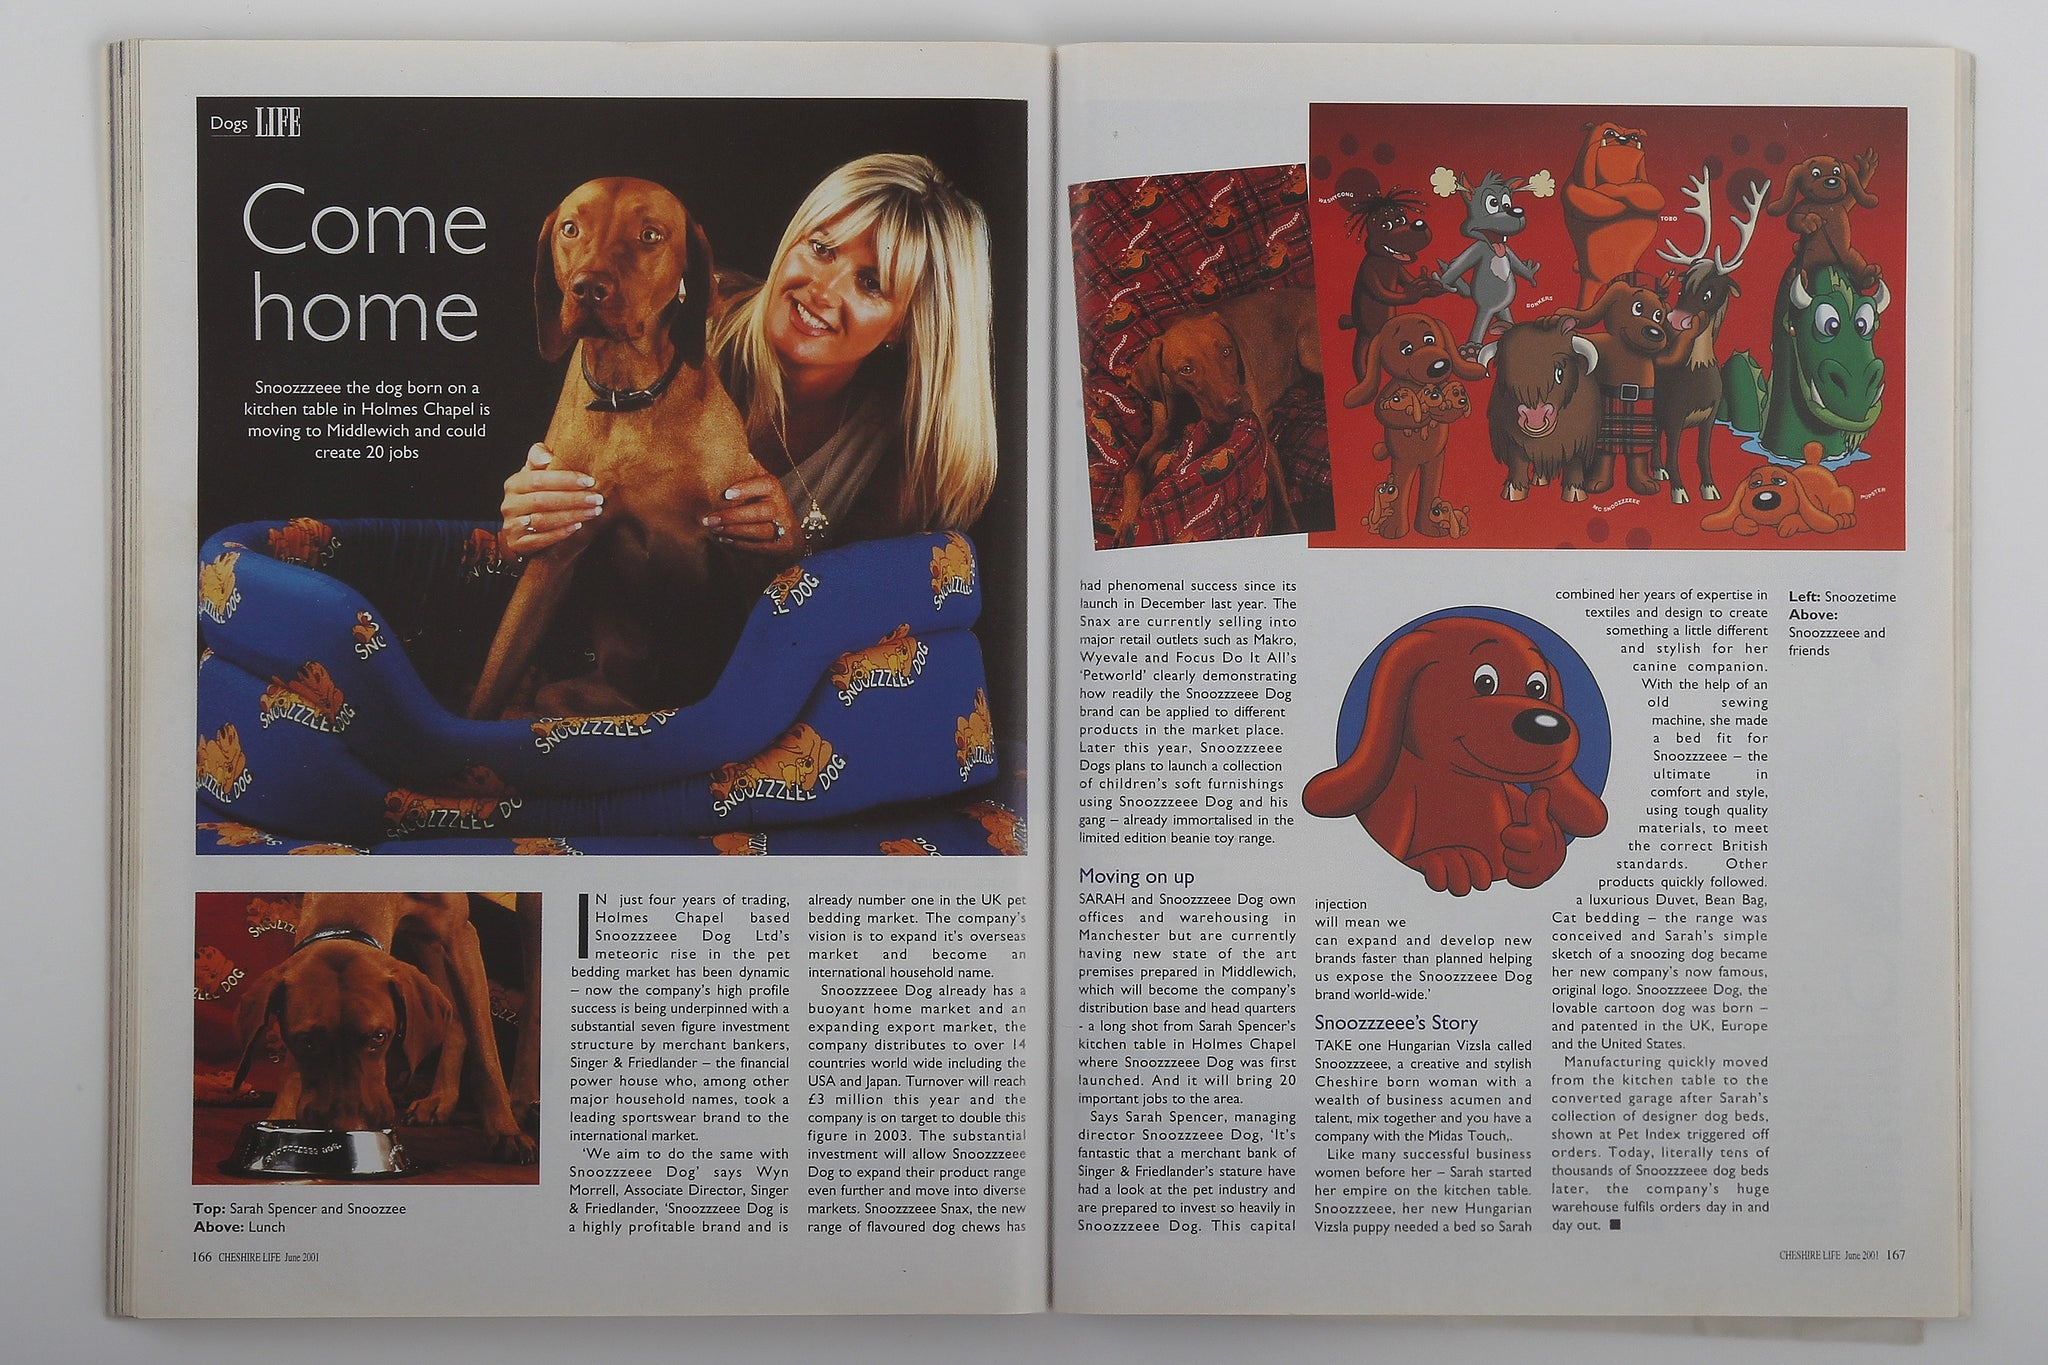 Dogs Life Article of Snoozeee dog